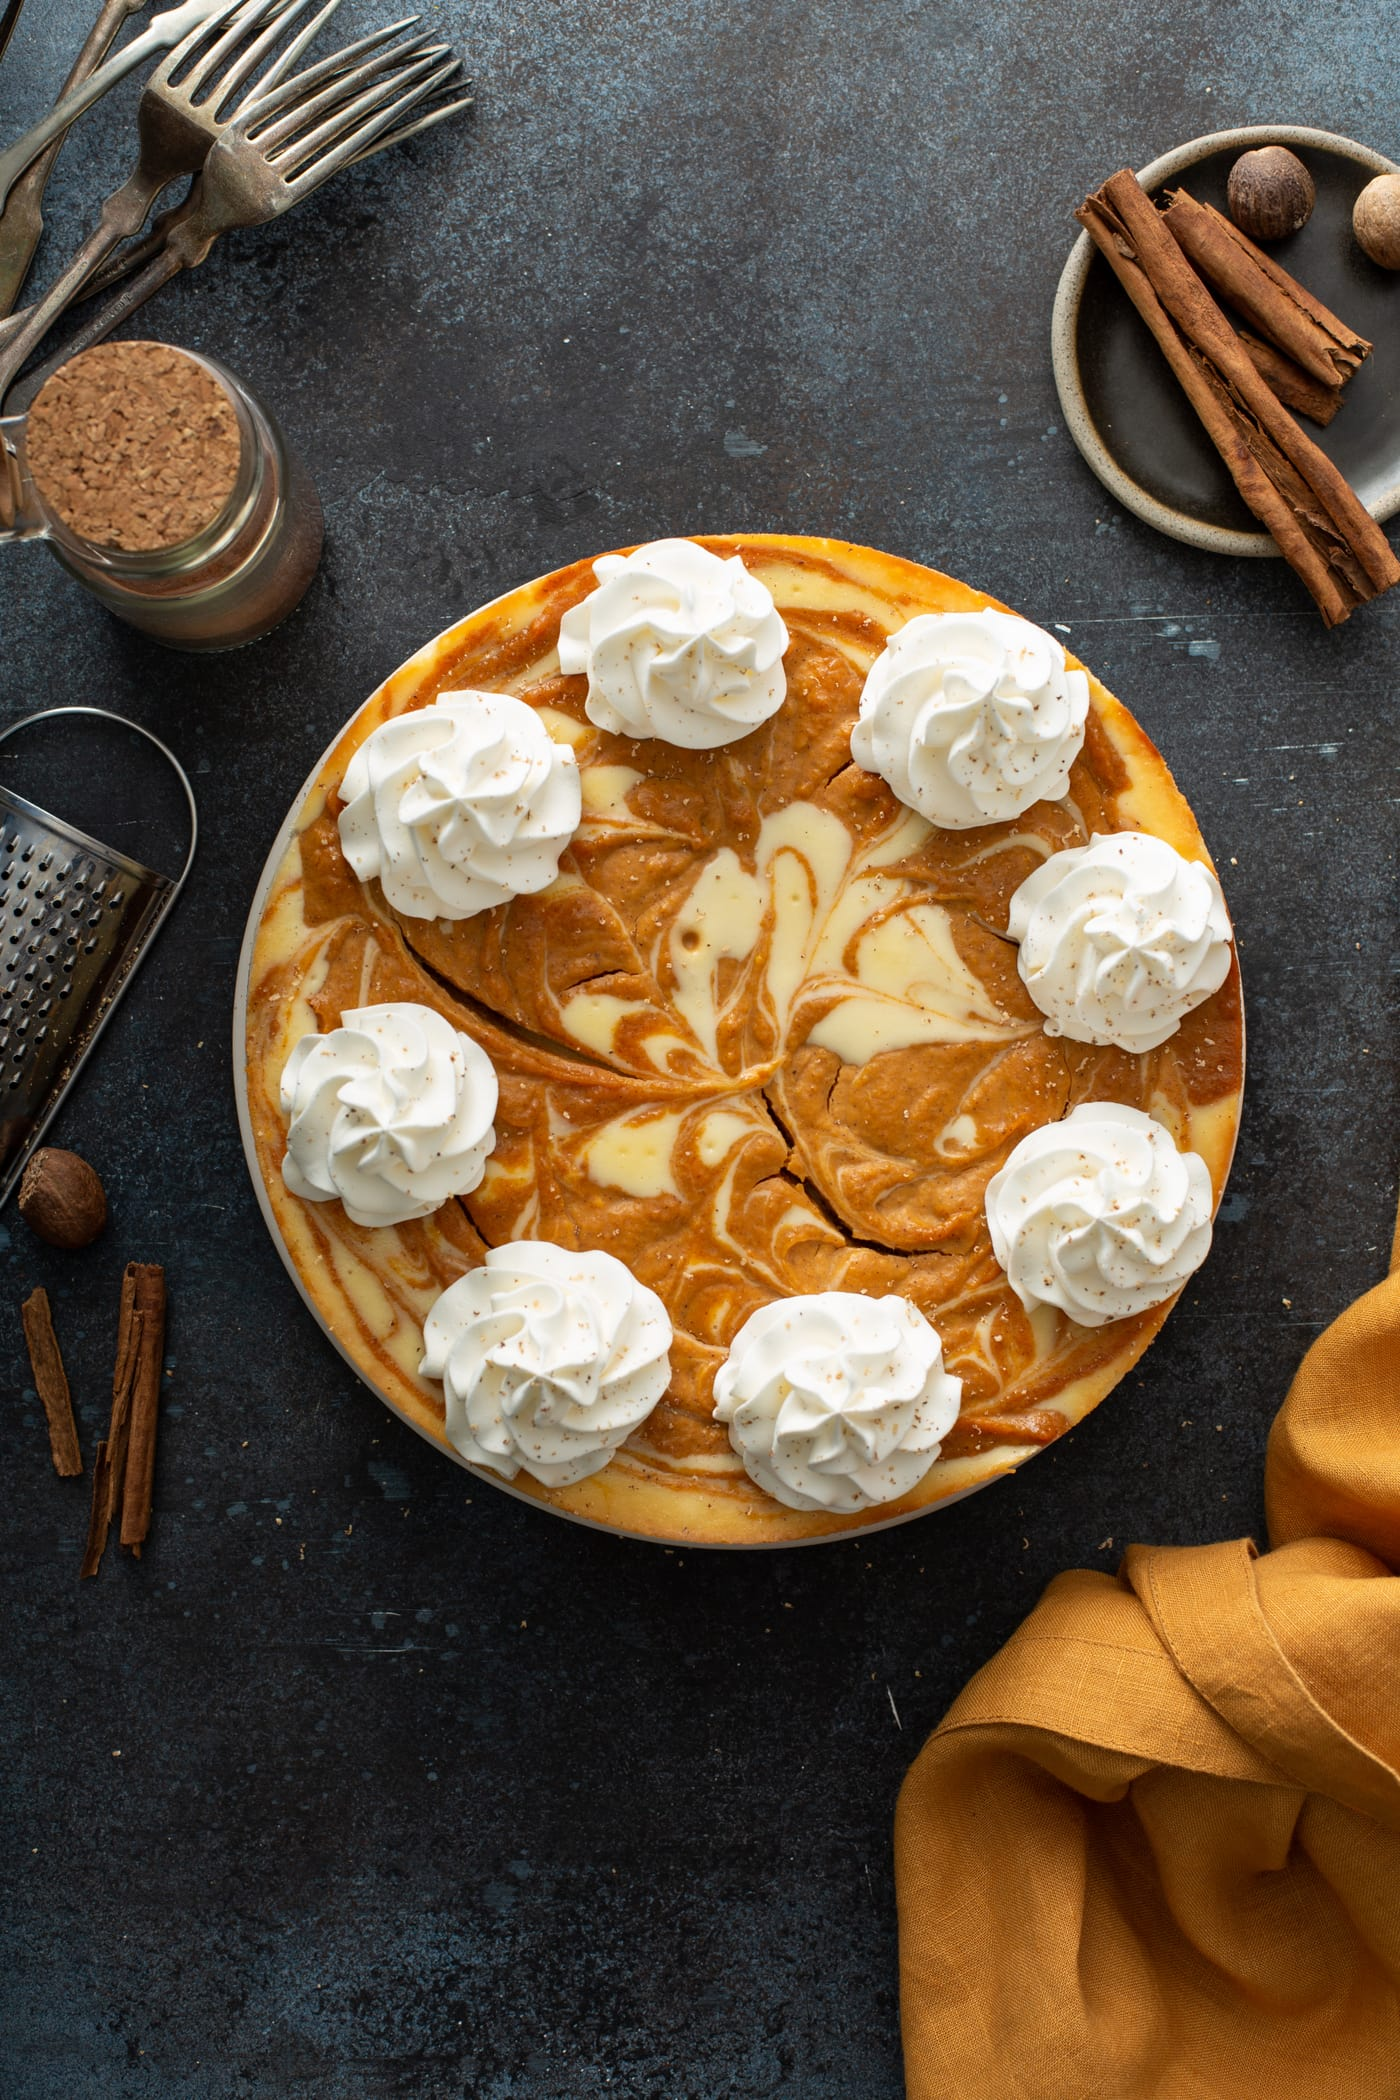 A swirled pumpkin cheesecake topped with dollops of whipped cream.